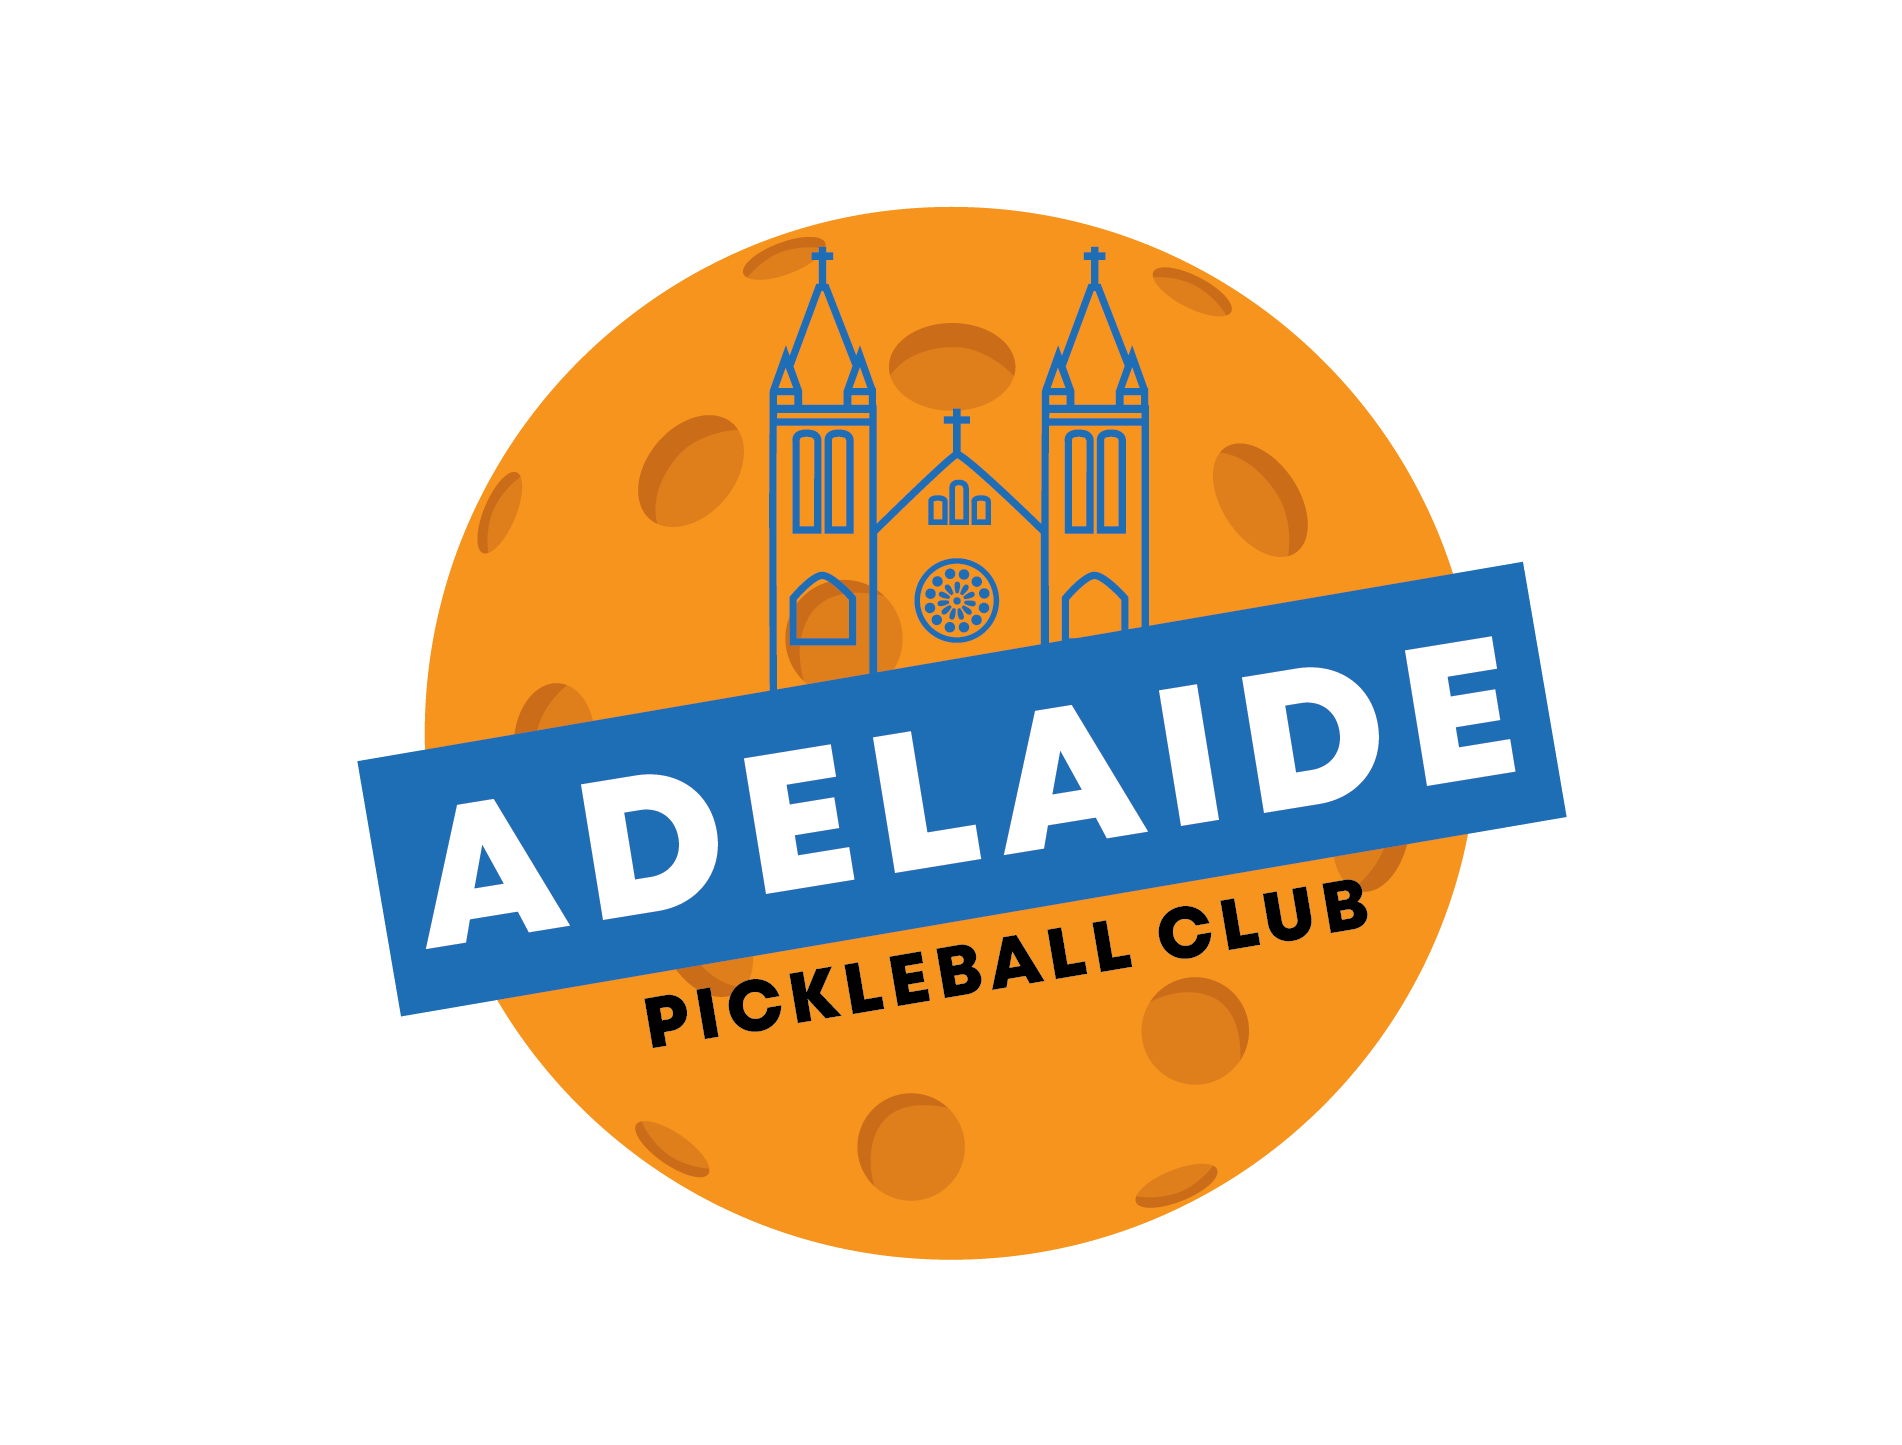 Adelaide Pickleball Club